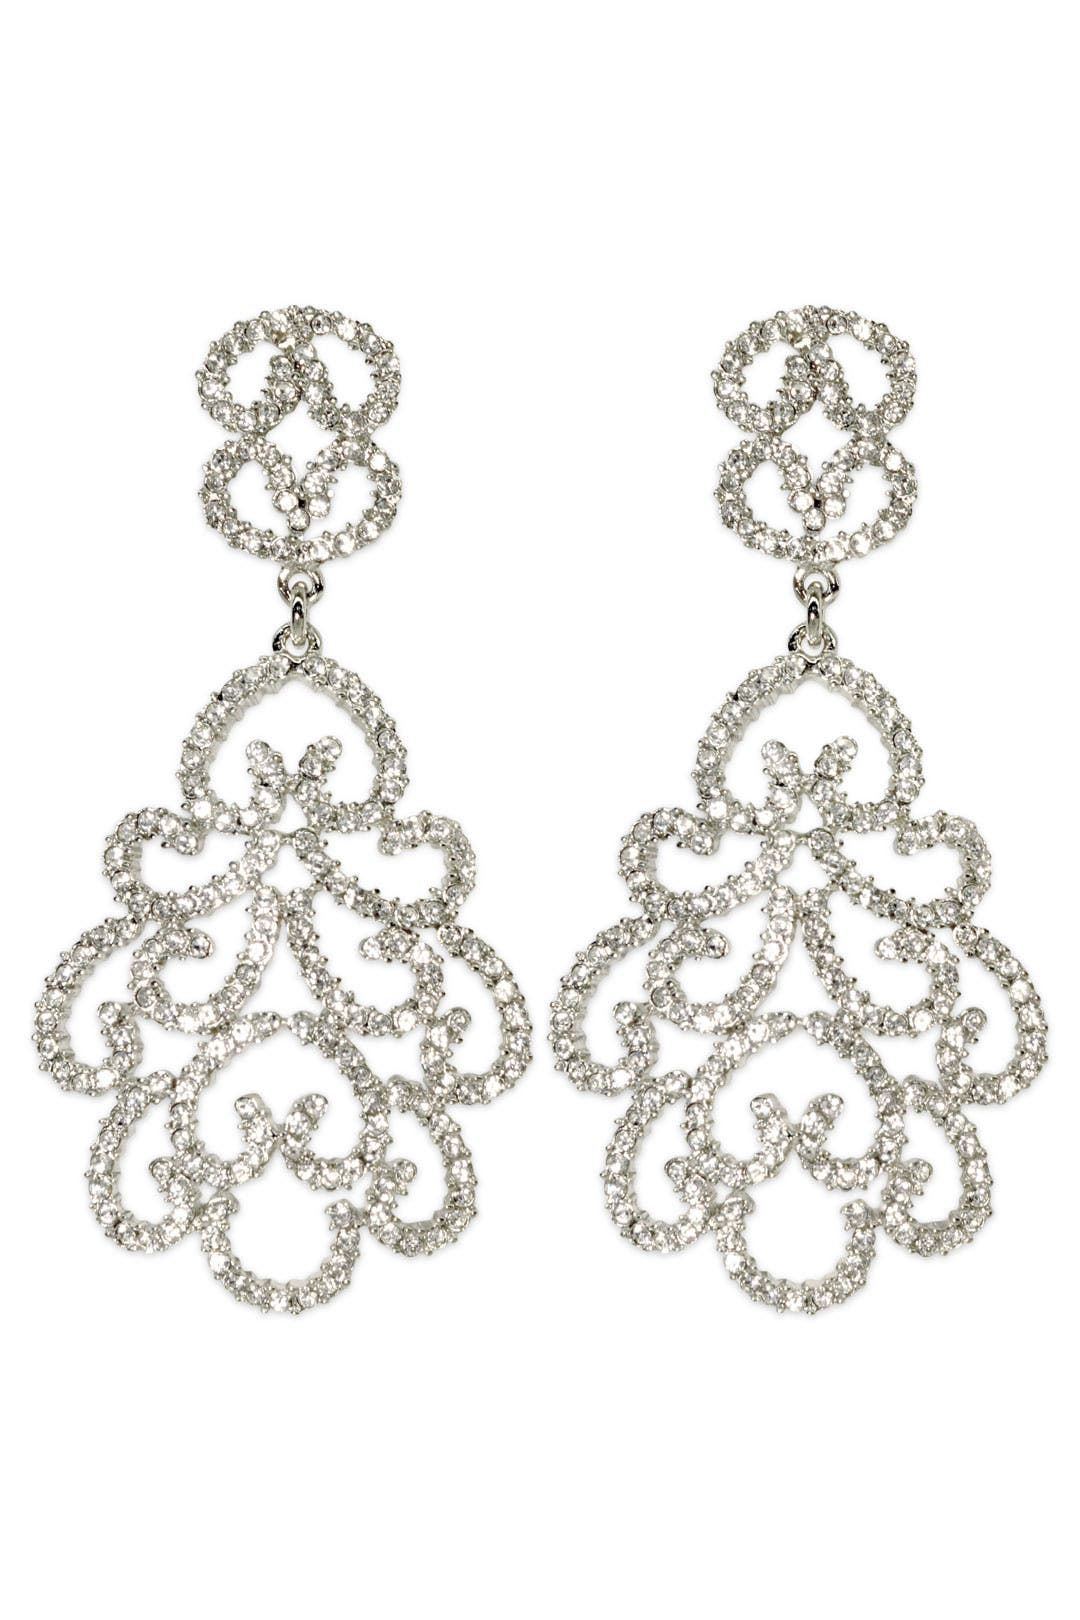 Red Carpet Earrings by Kenneth Jay Lane